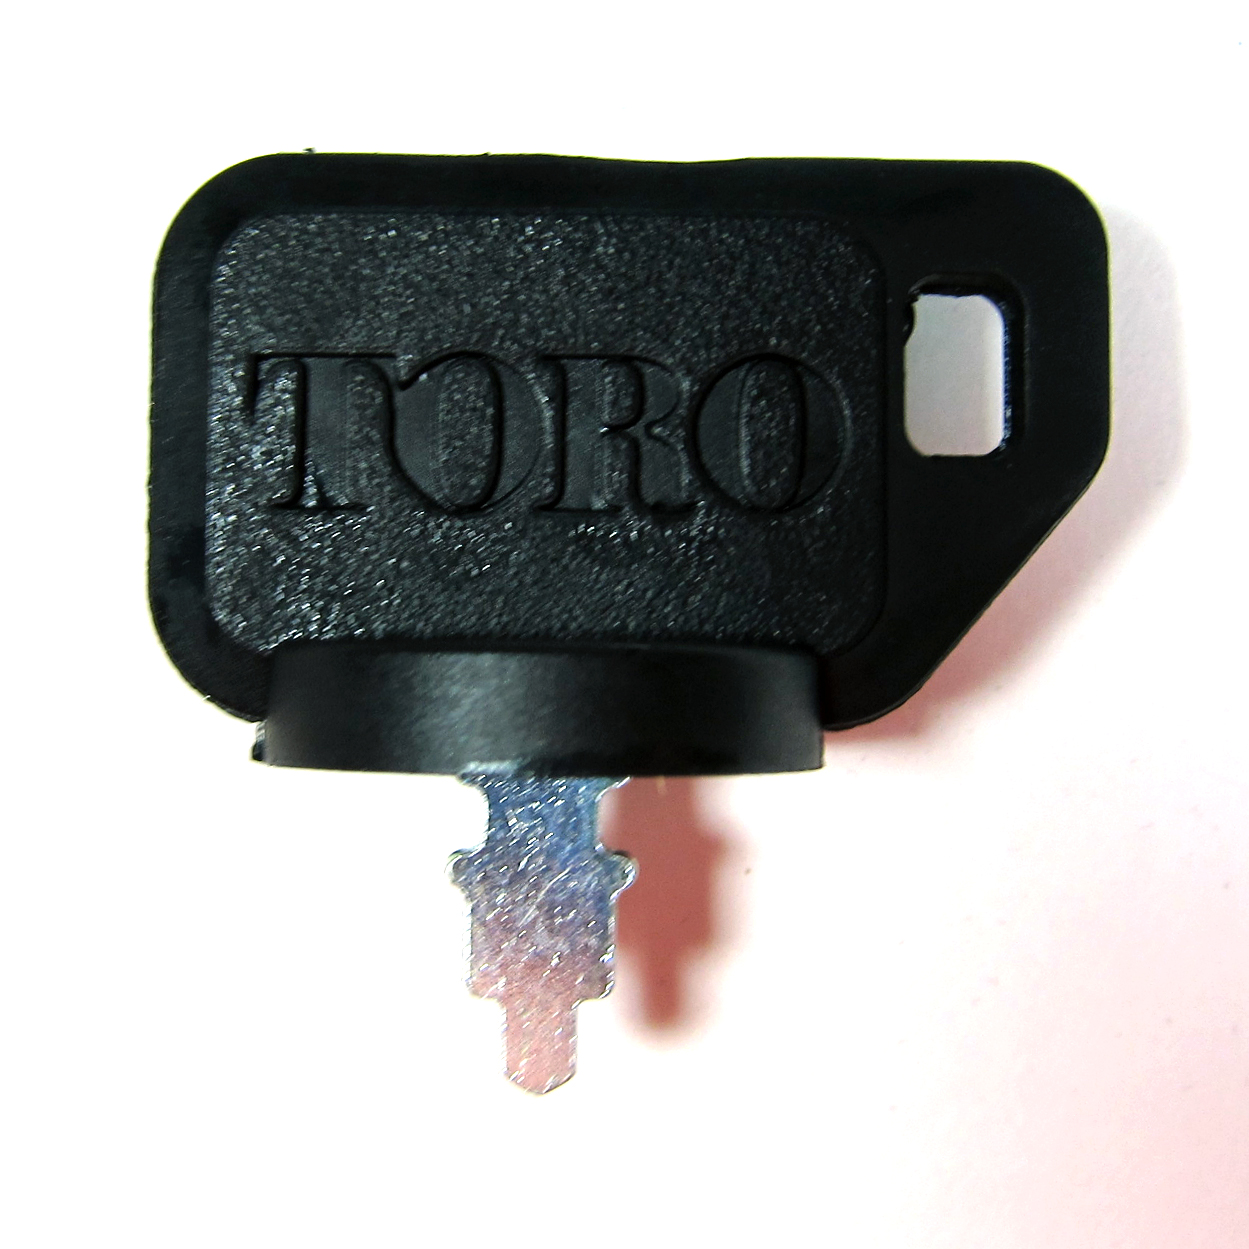 63 8360 toro key (63 8360) the mower shop toro z4200 wire diagram at bayanpartner.co